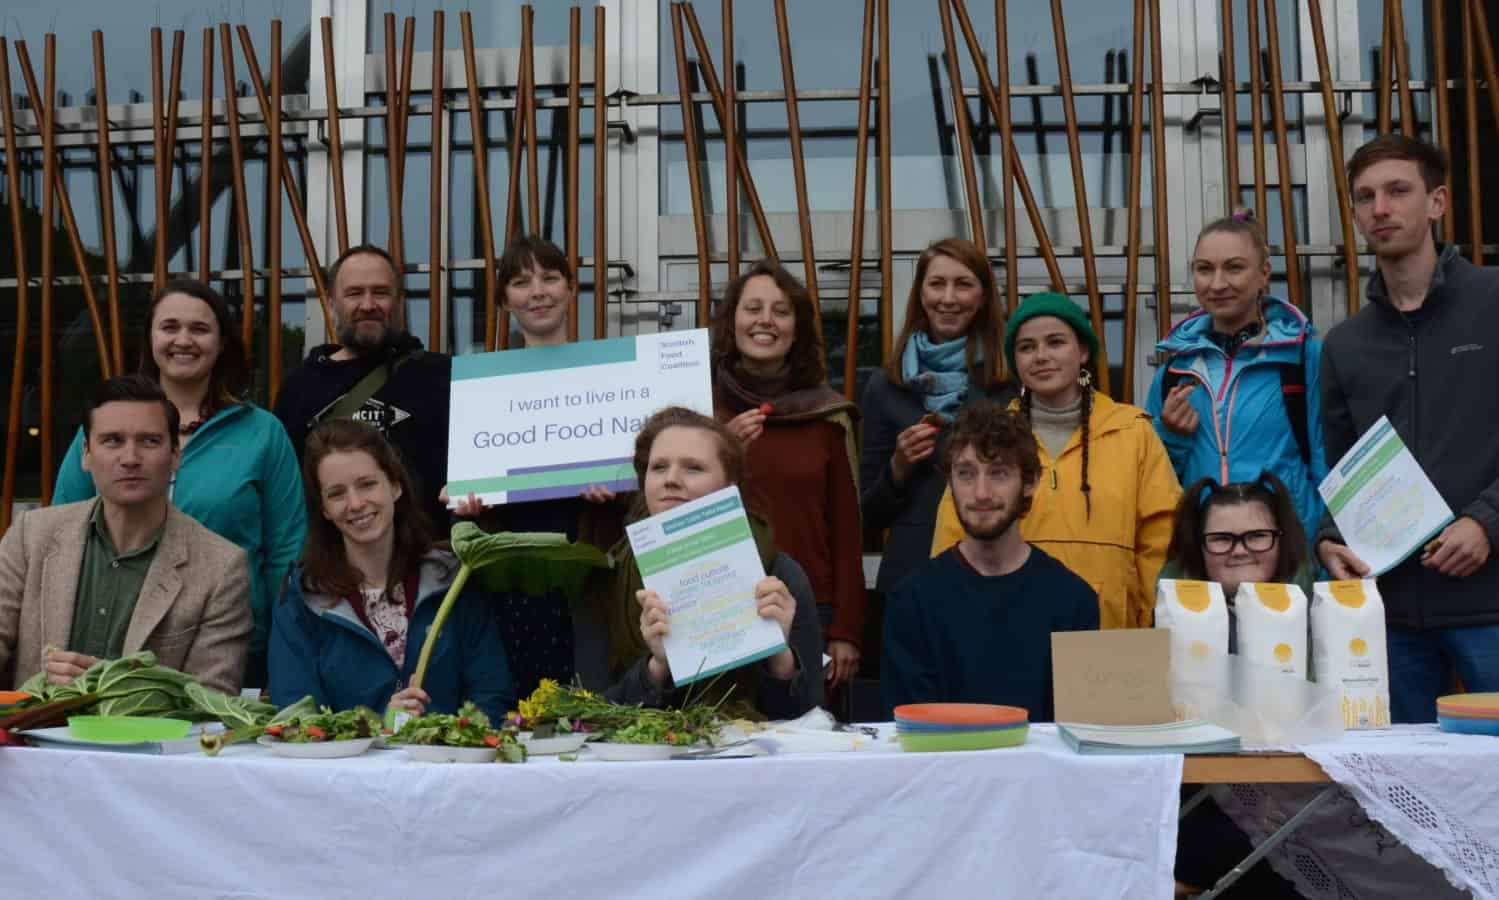 The Scottish Food Coalition is proposing a Good Food Nation Bill which can transform the food system and guarantee the universal right to healthy and nutritious food.